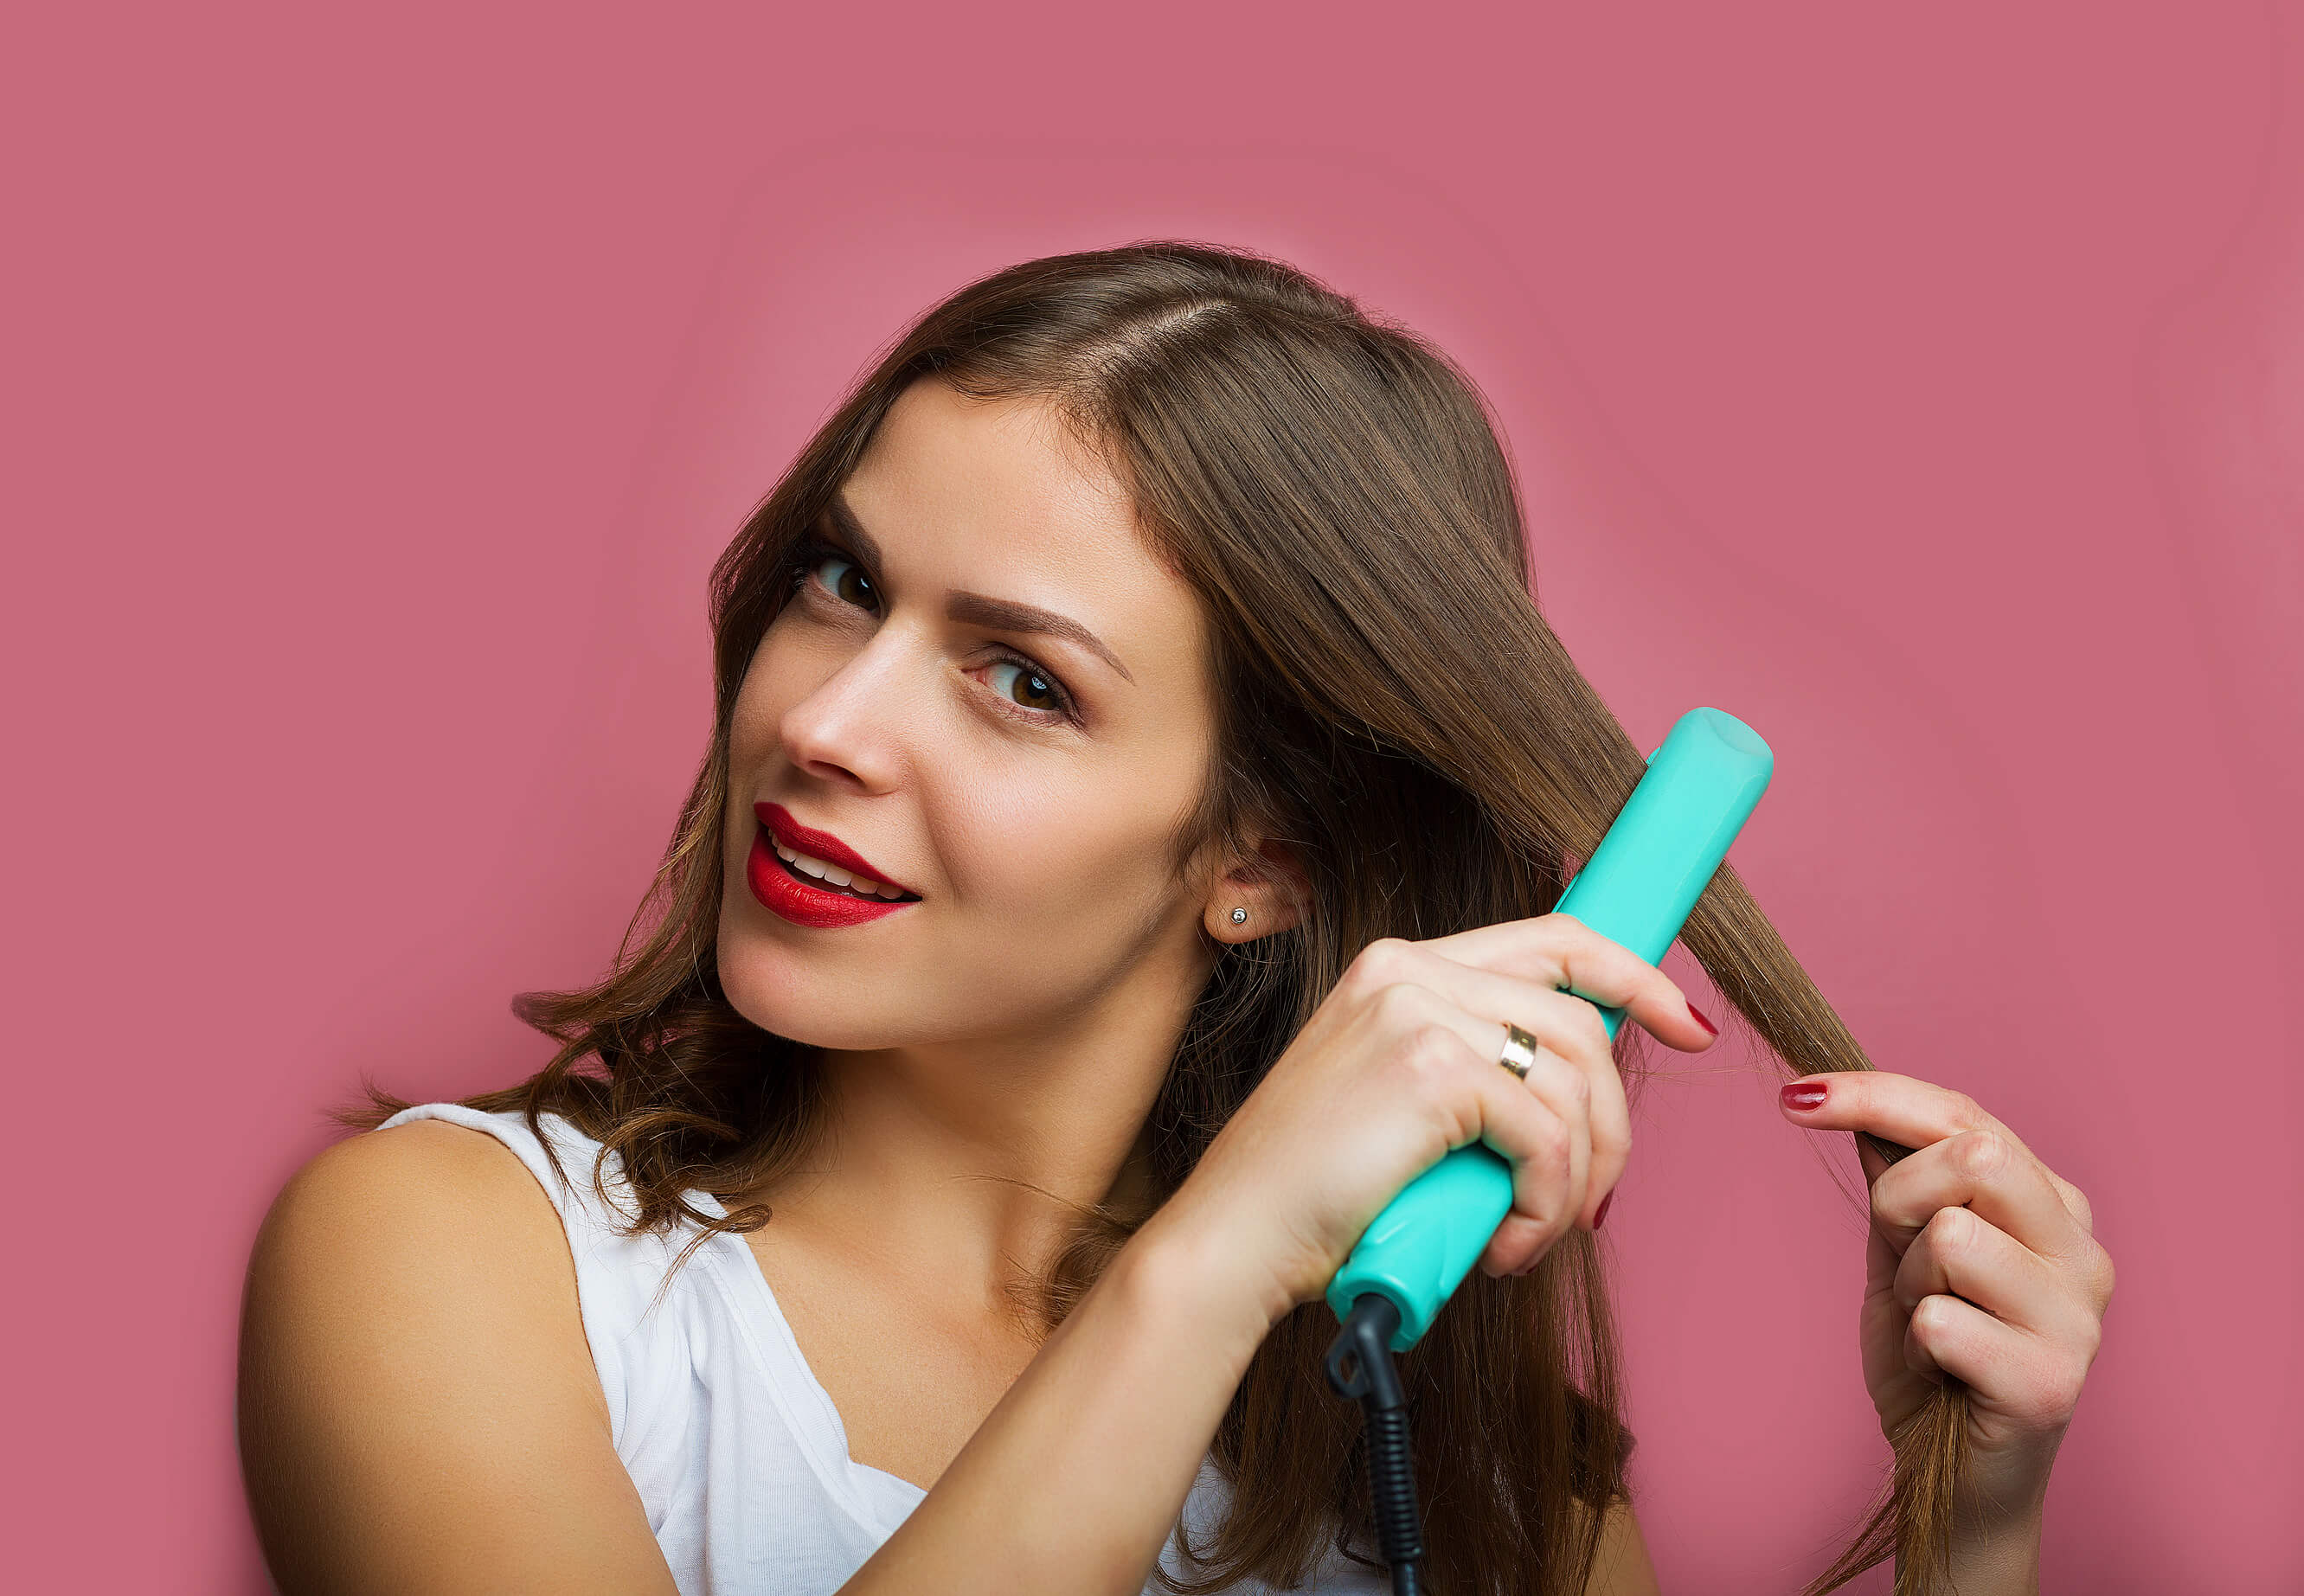 How To Straighten Hair Like a Pro with a Flat Iron